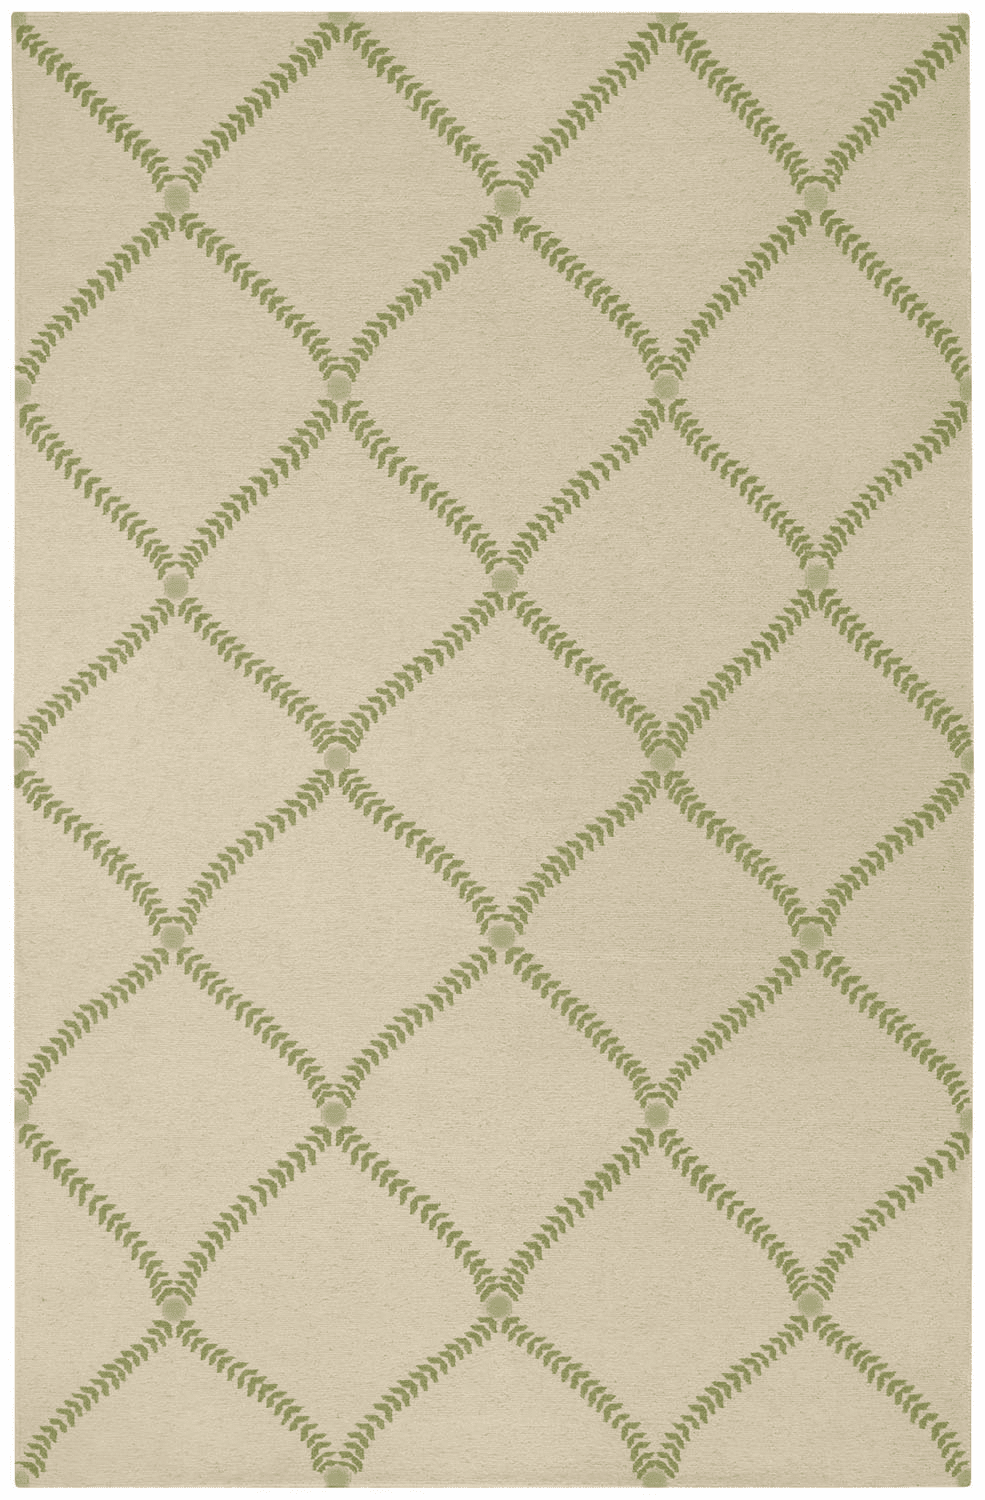 Hand Knotted Grass Green Rug